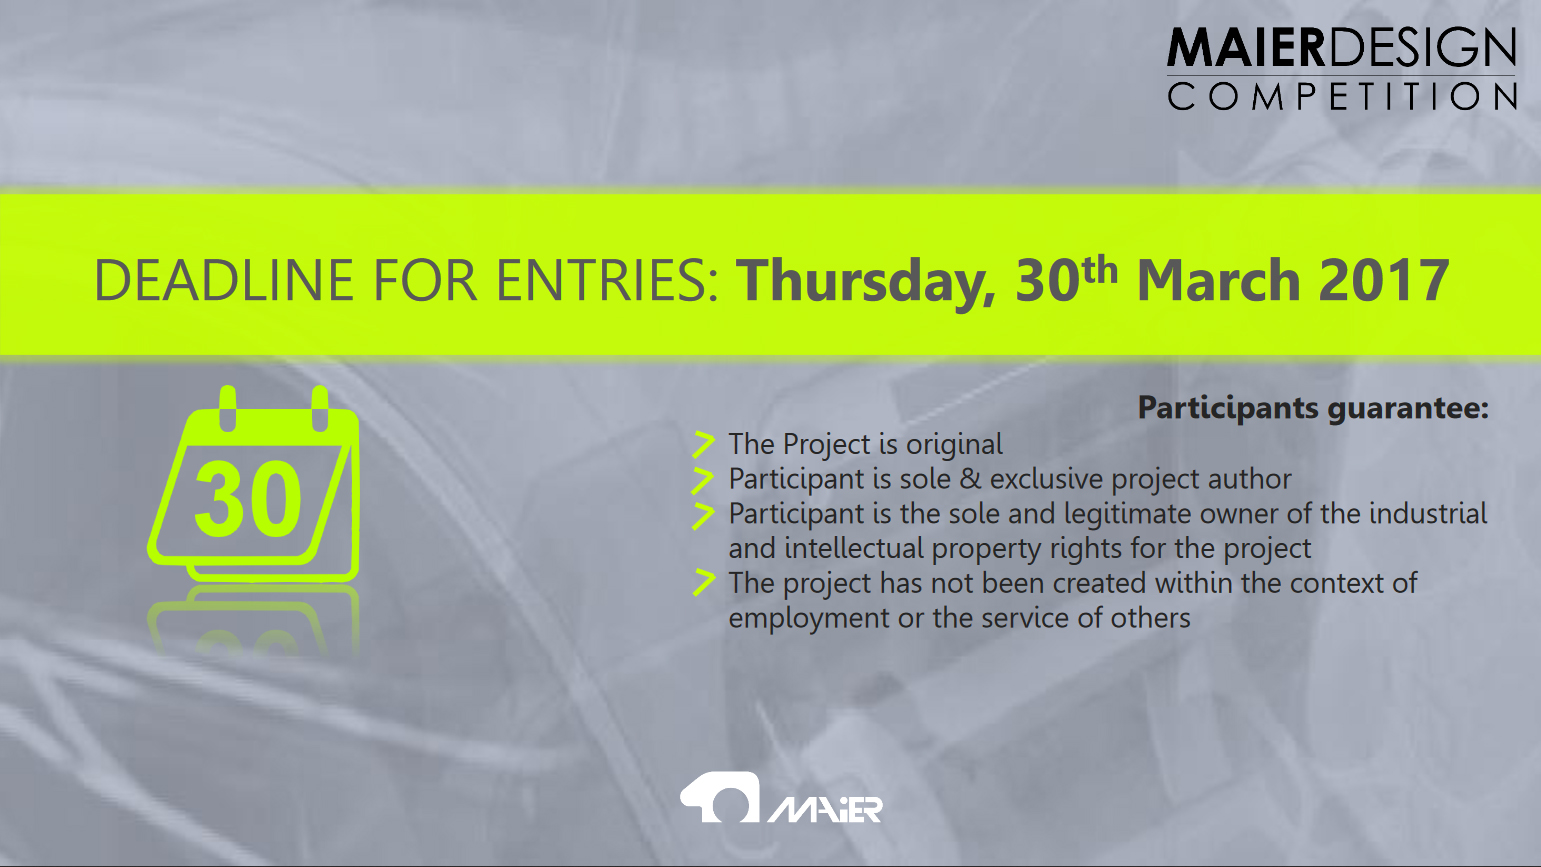 7th-maier-international-design-competition